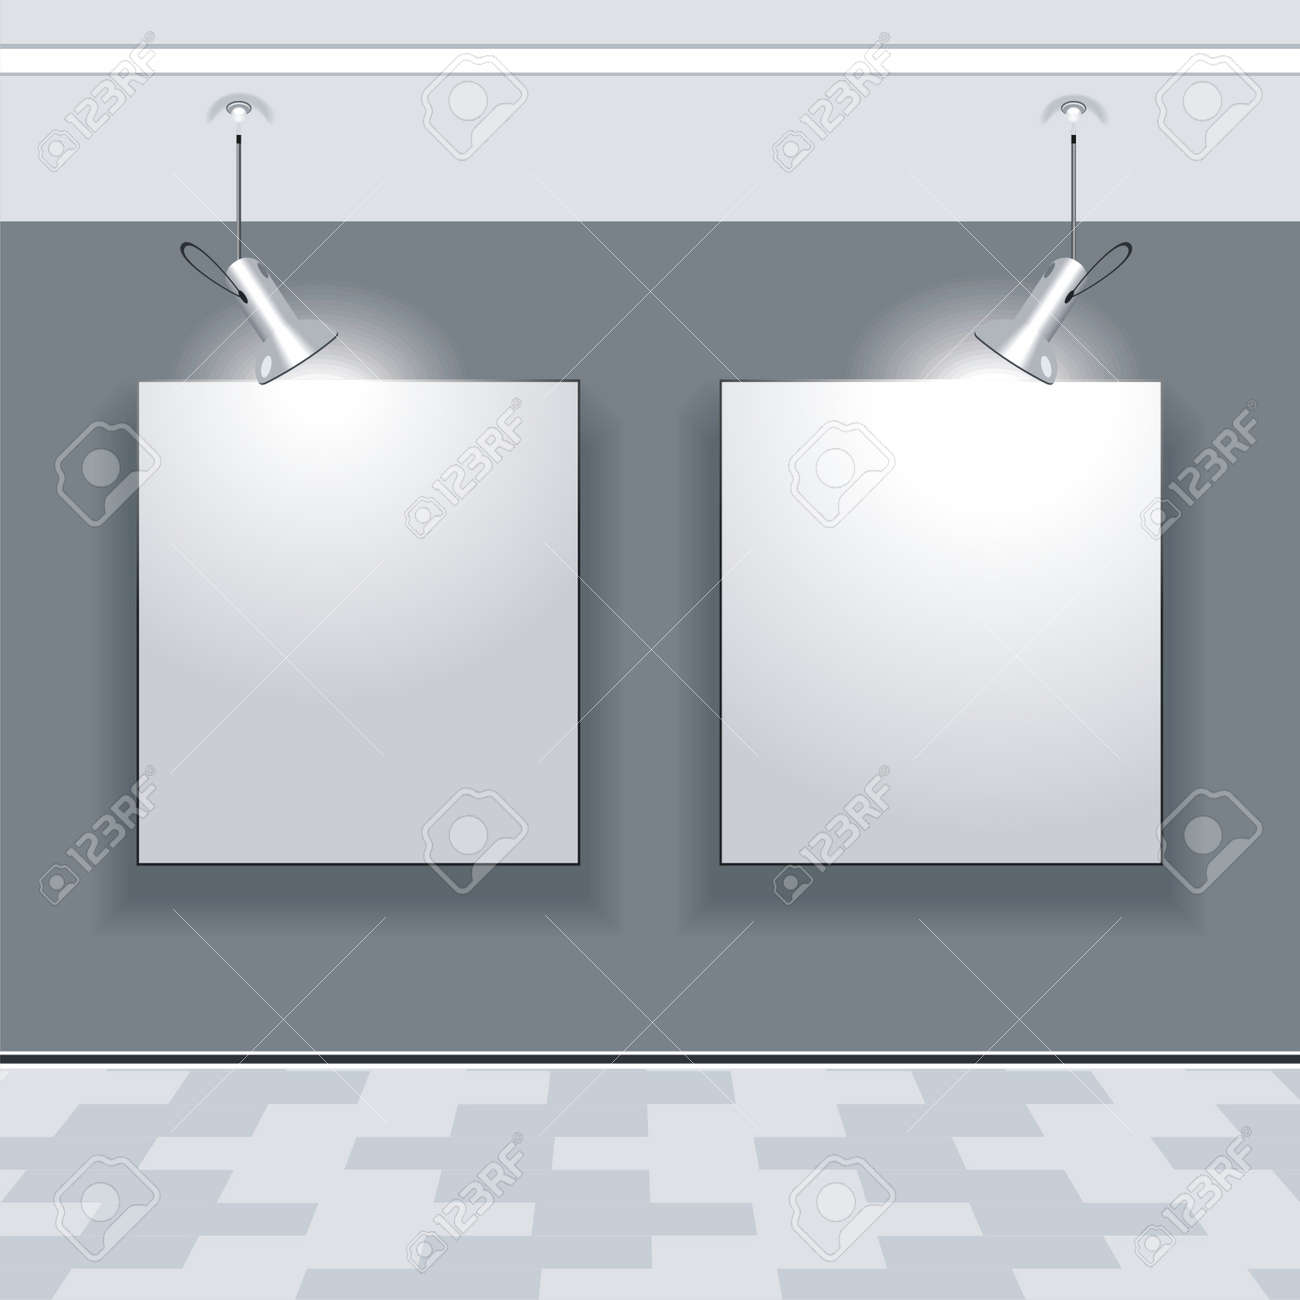 gallery interior with empty frames on wall stock vector 10042403 - Empty Frames On Wall